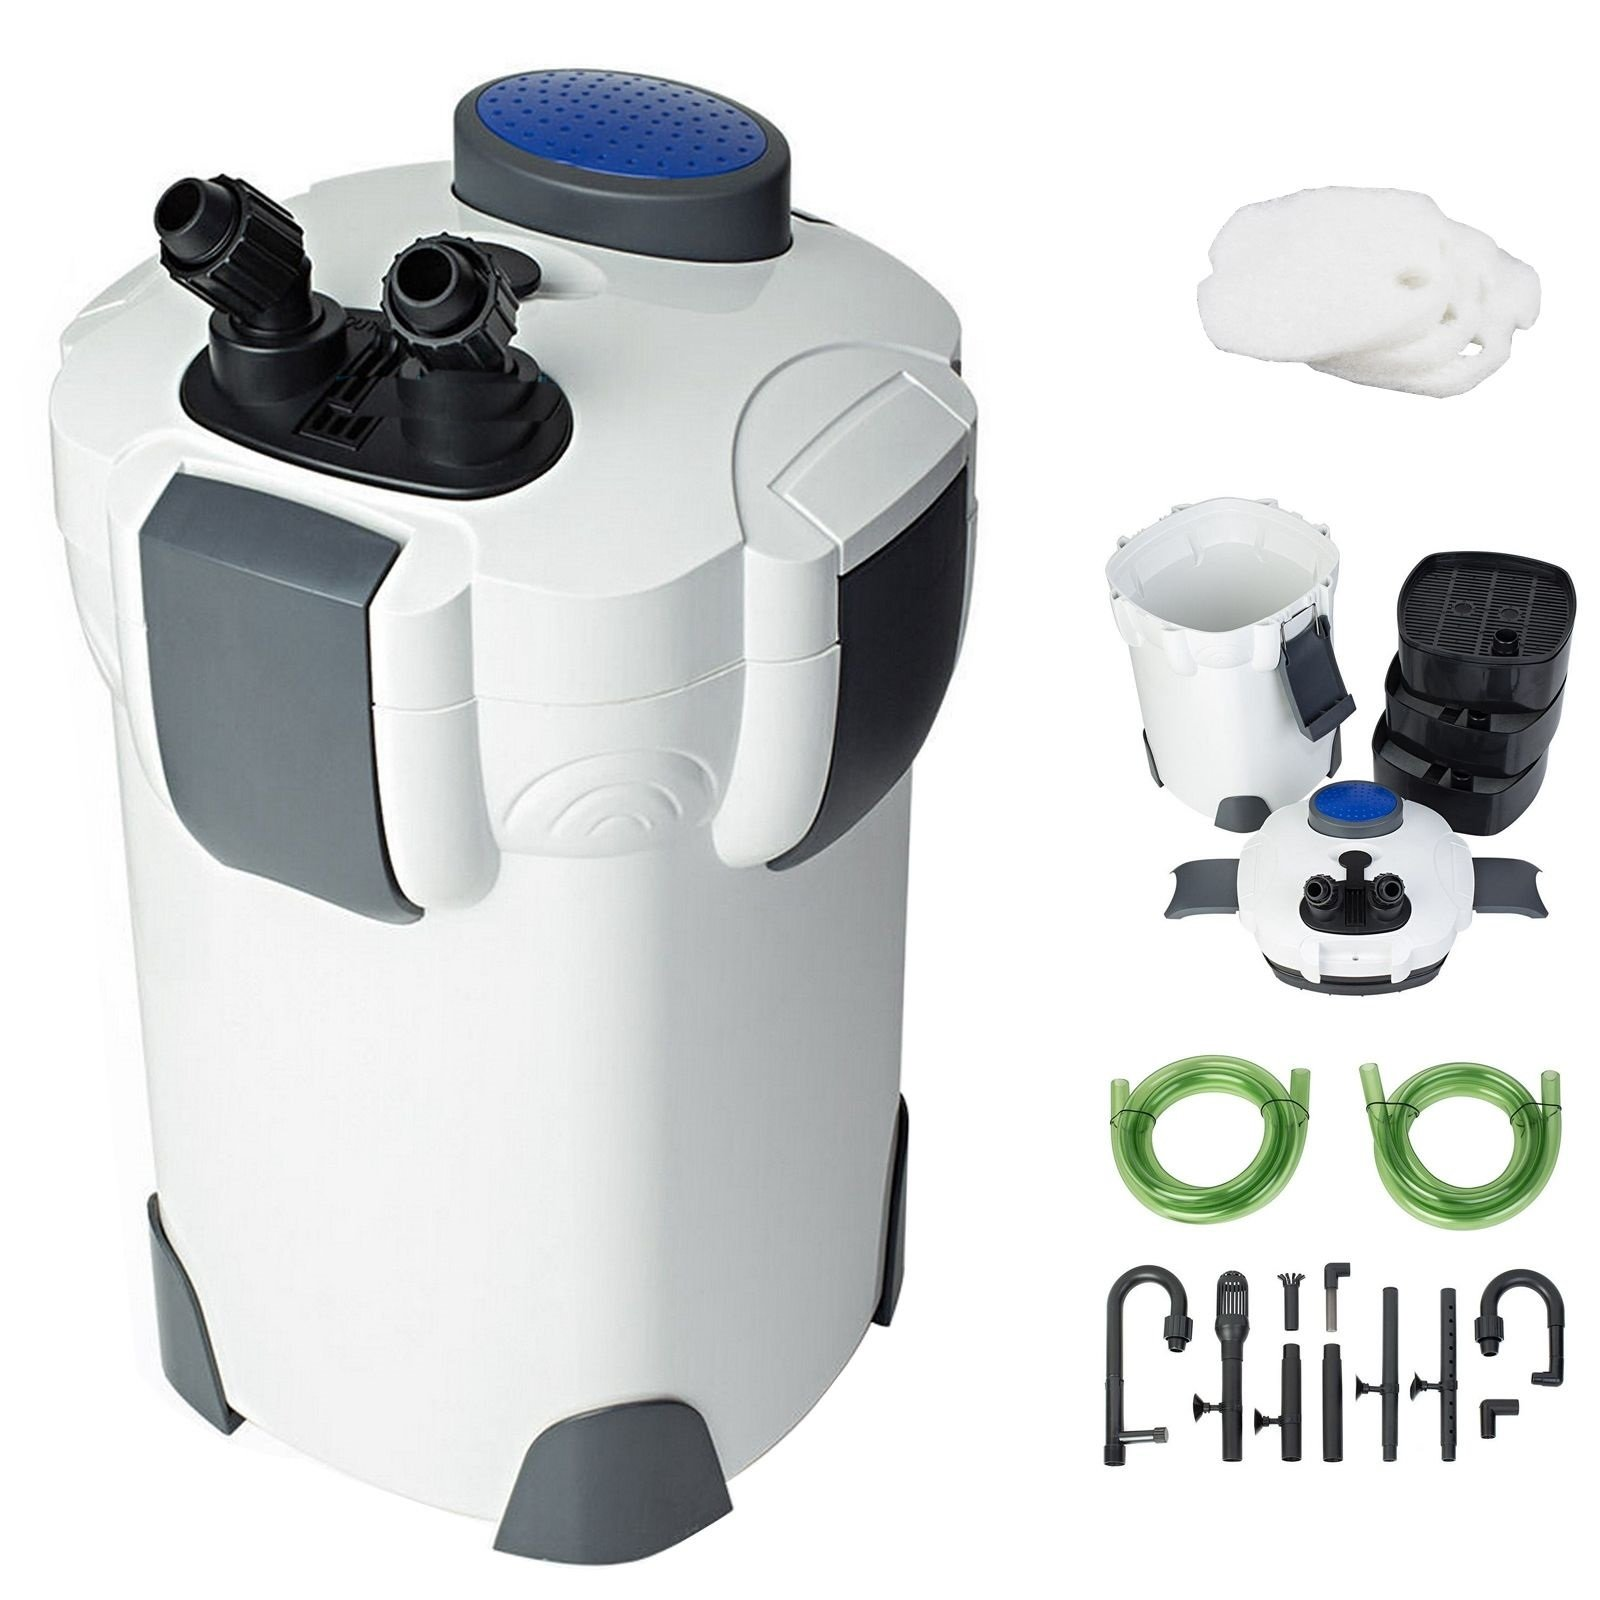 Aquarium New 3-Stage External Canister Filter 265GPH 75Gal with Built-in Pump